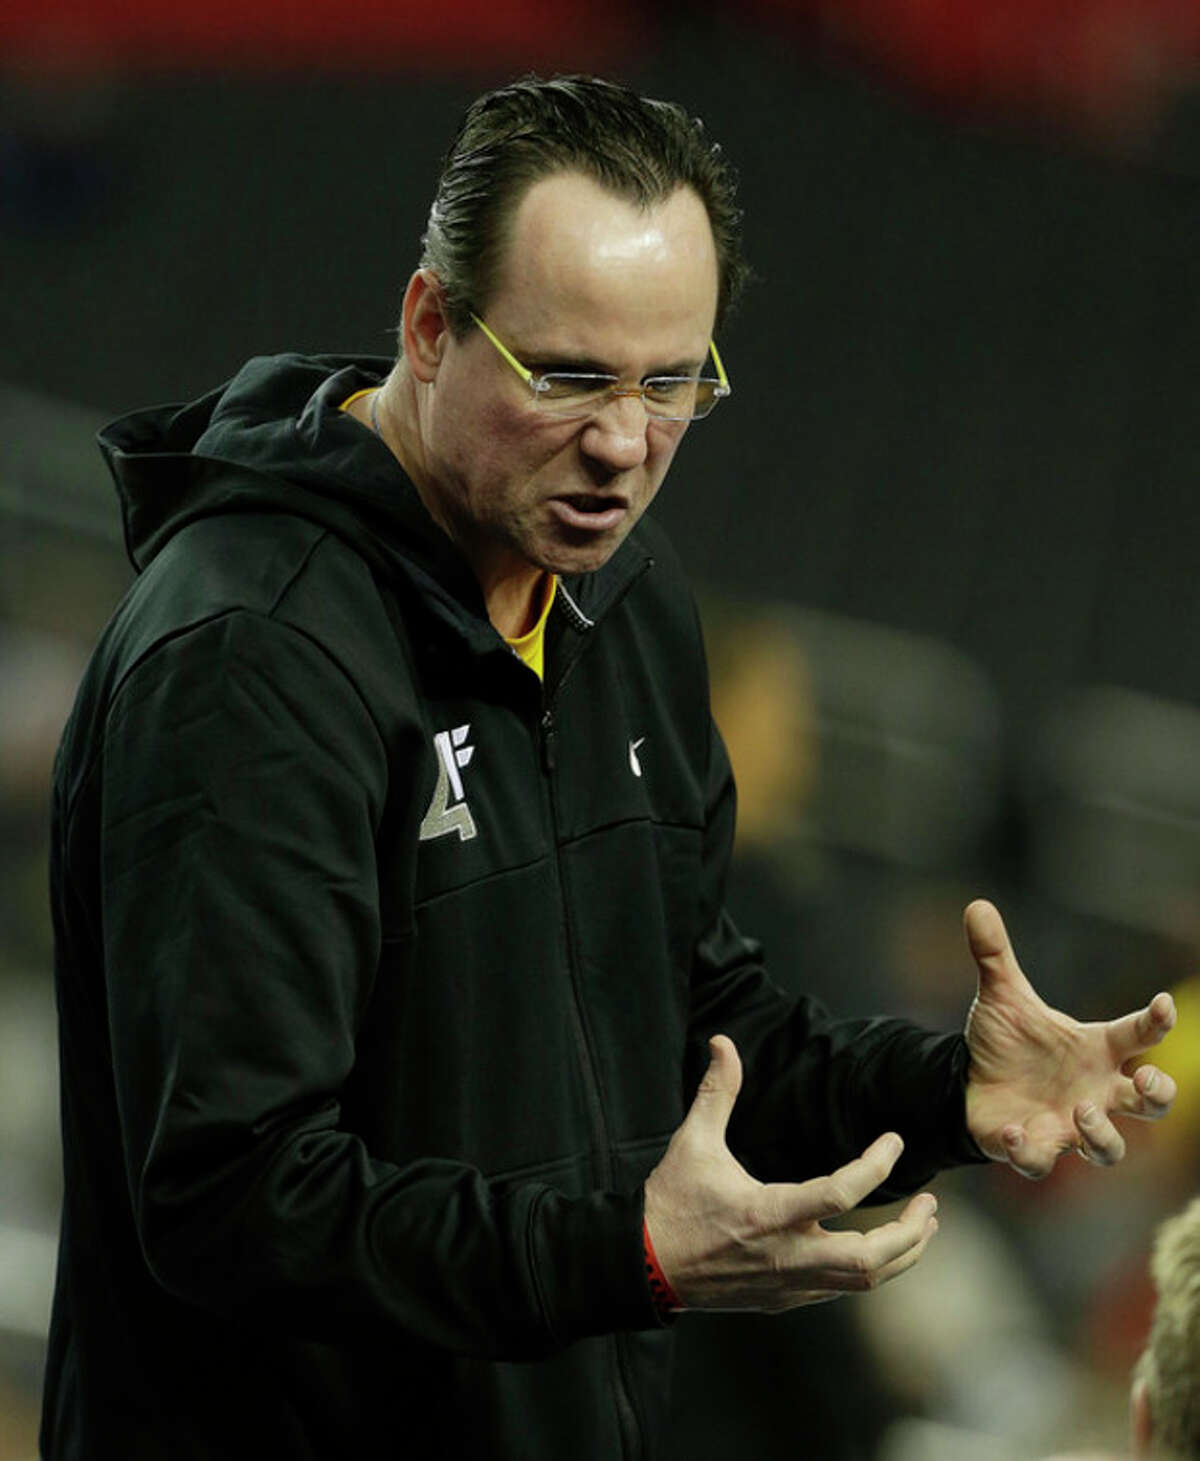 Wichita State head coach Gregg Marshall speaks to players during practice for their NCAA Final Four tournament college basketball semifinal game against Louisville, Friday, April 5, 2013, in Atlanta. Wichita State plays Louisville in a semifinal game on Saturday. (AP Photo/John Bazemore)